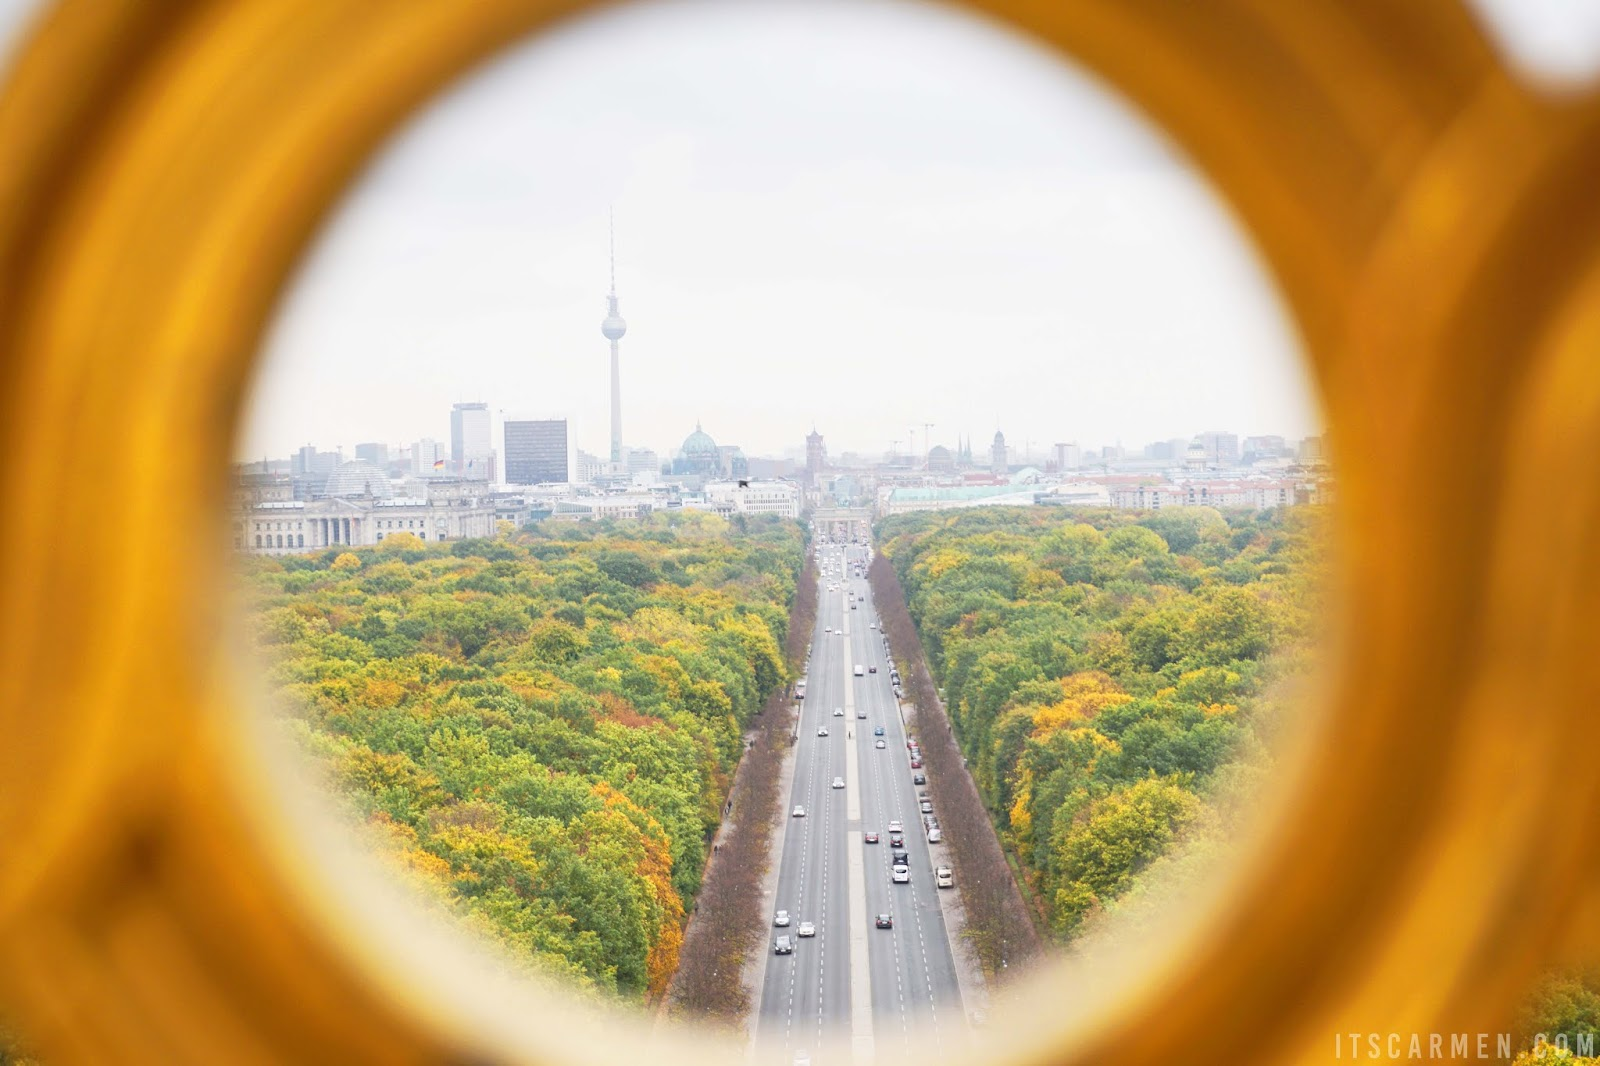 A view of the Tiergarten, What to Do in Berlin in 3 Days: Visiting Berlin, Germany